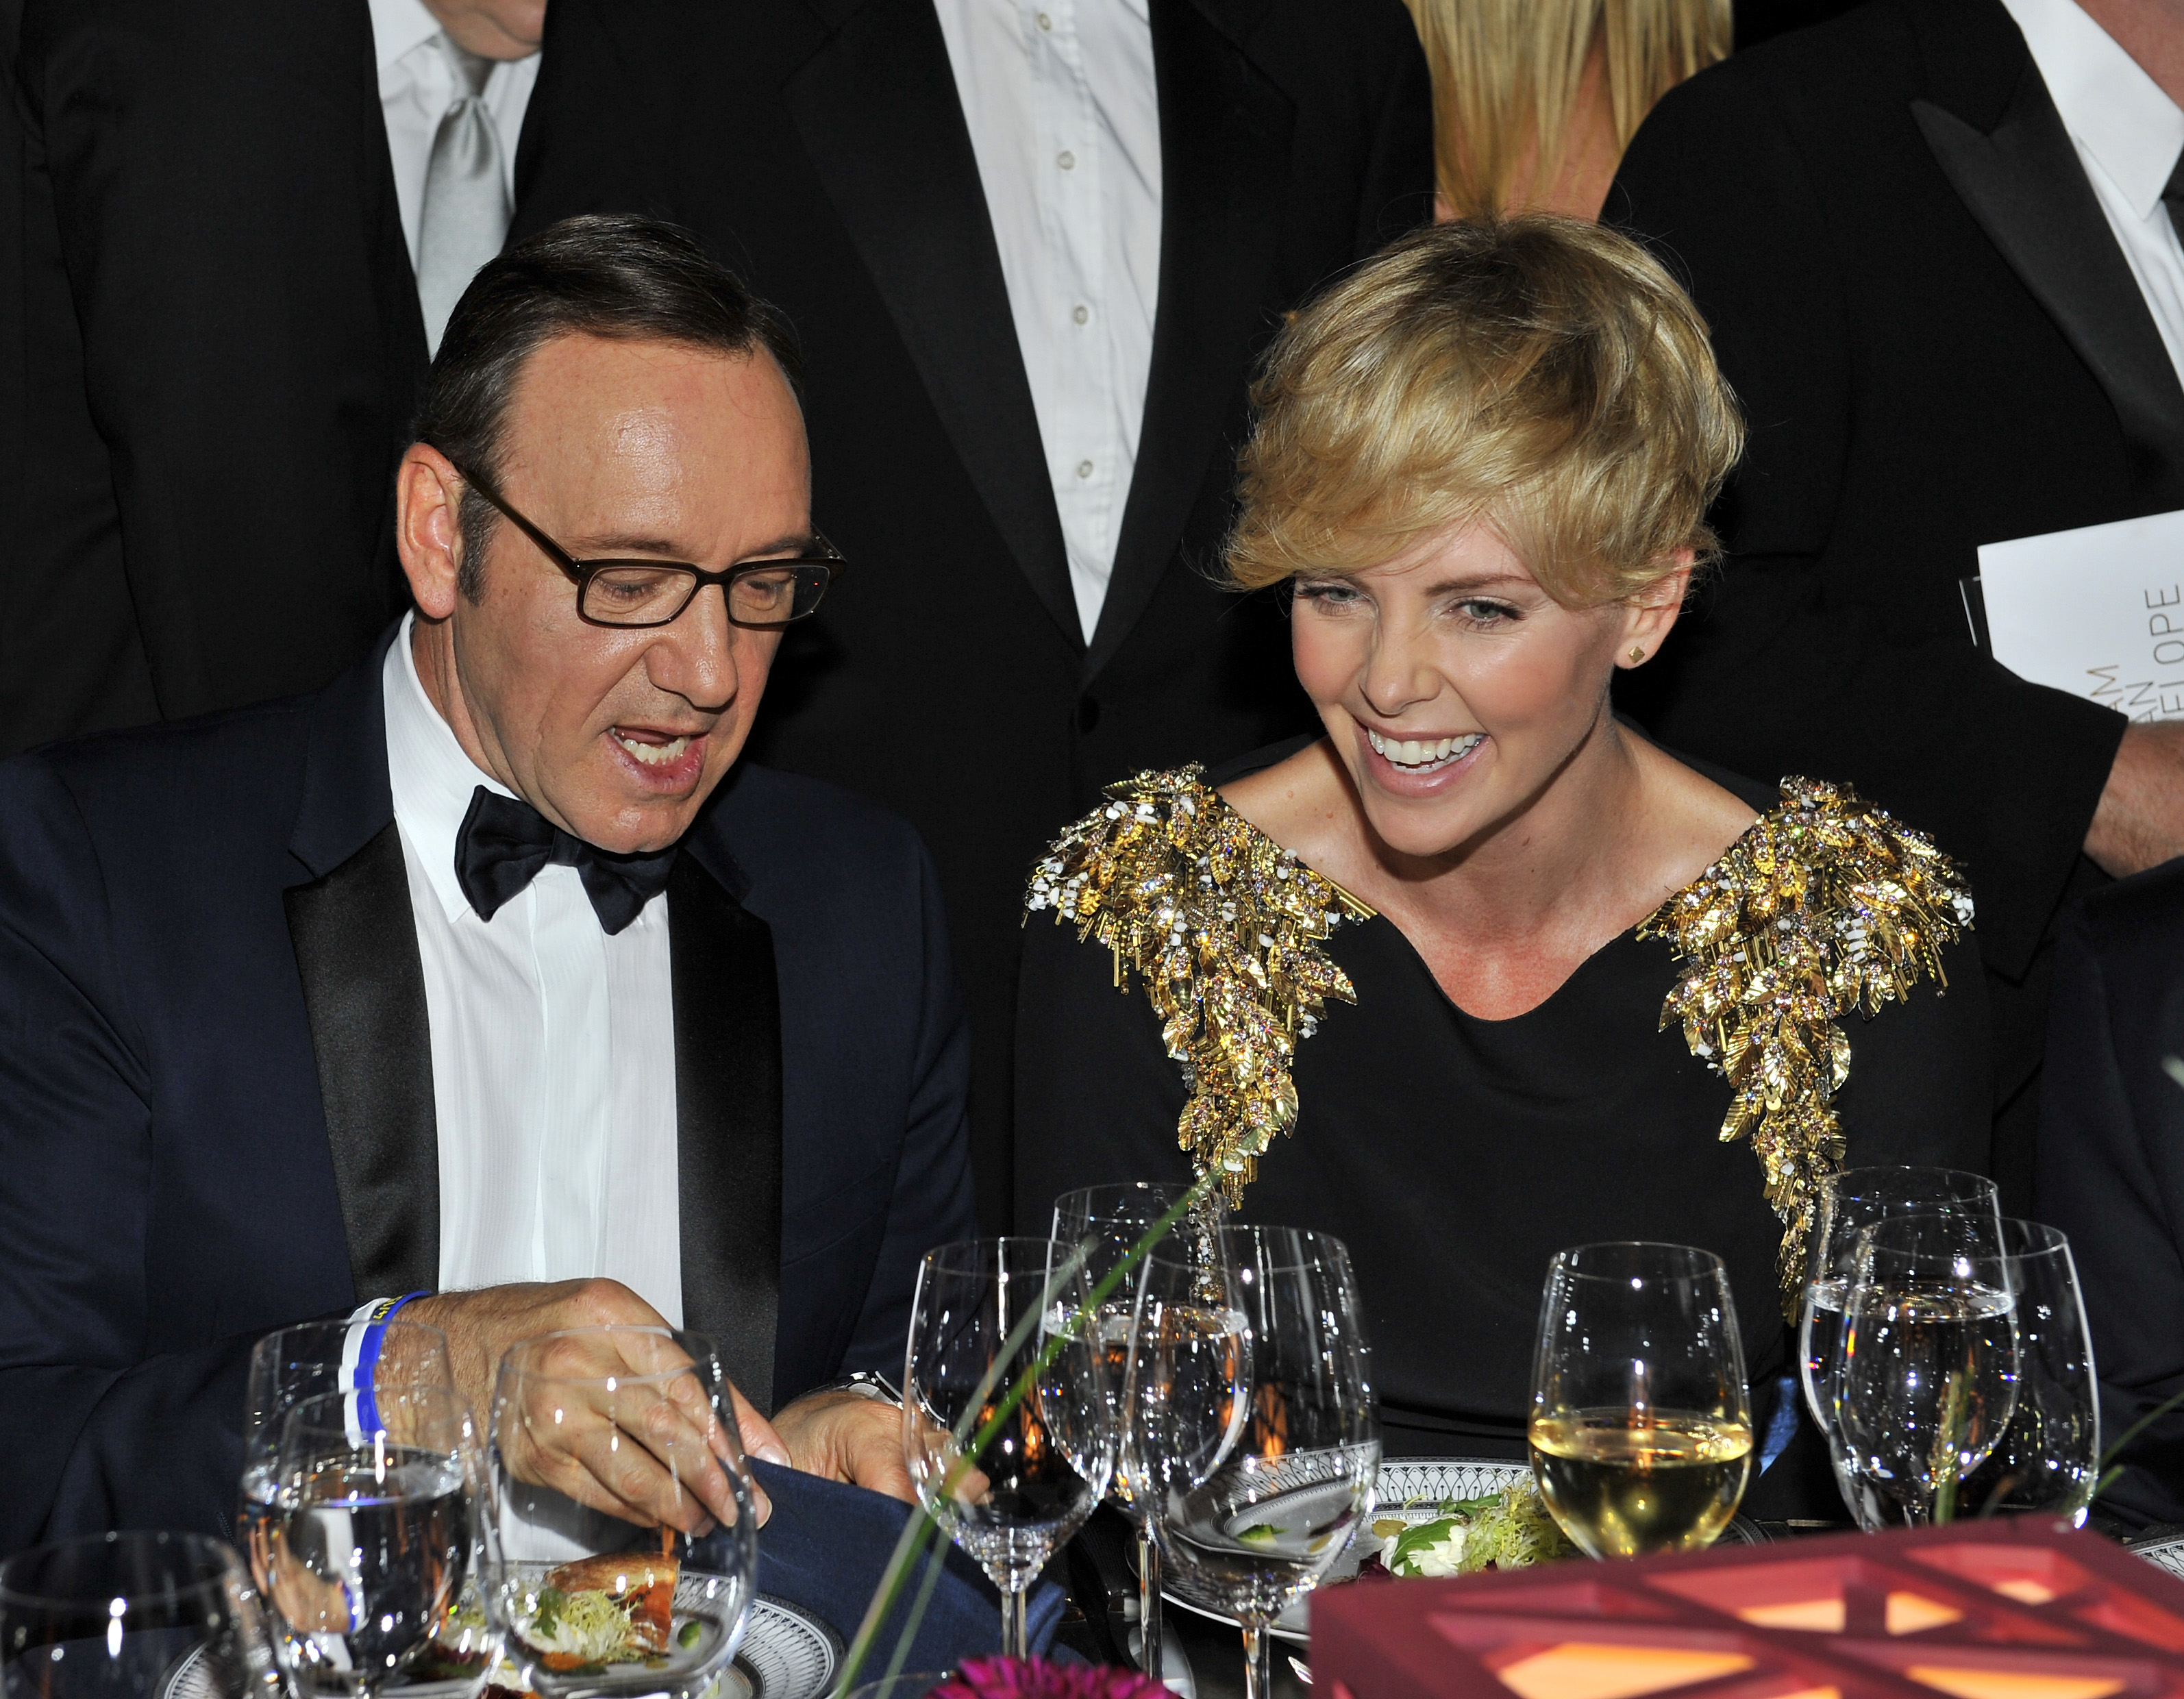 Kevin and Charlize share a laugh (Getty Images)